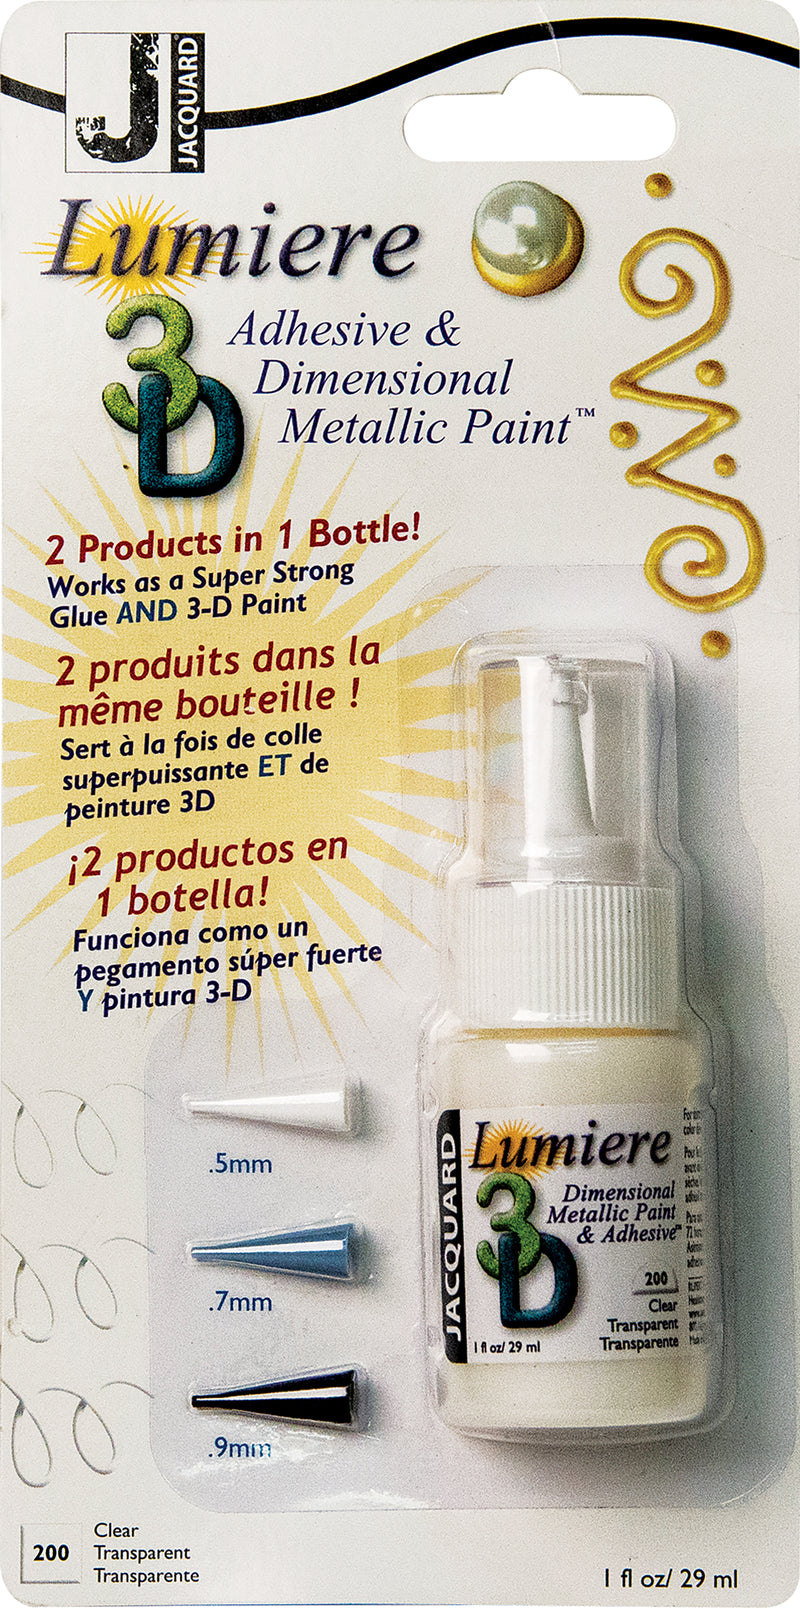 Jacquard Lumiere 3D Metallic Paint & Adhesive Blister Pk 1oz-Clear W/3 Plastic Tips